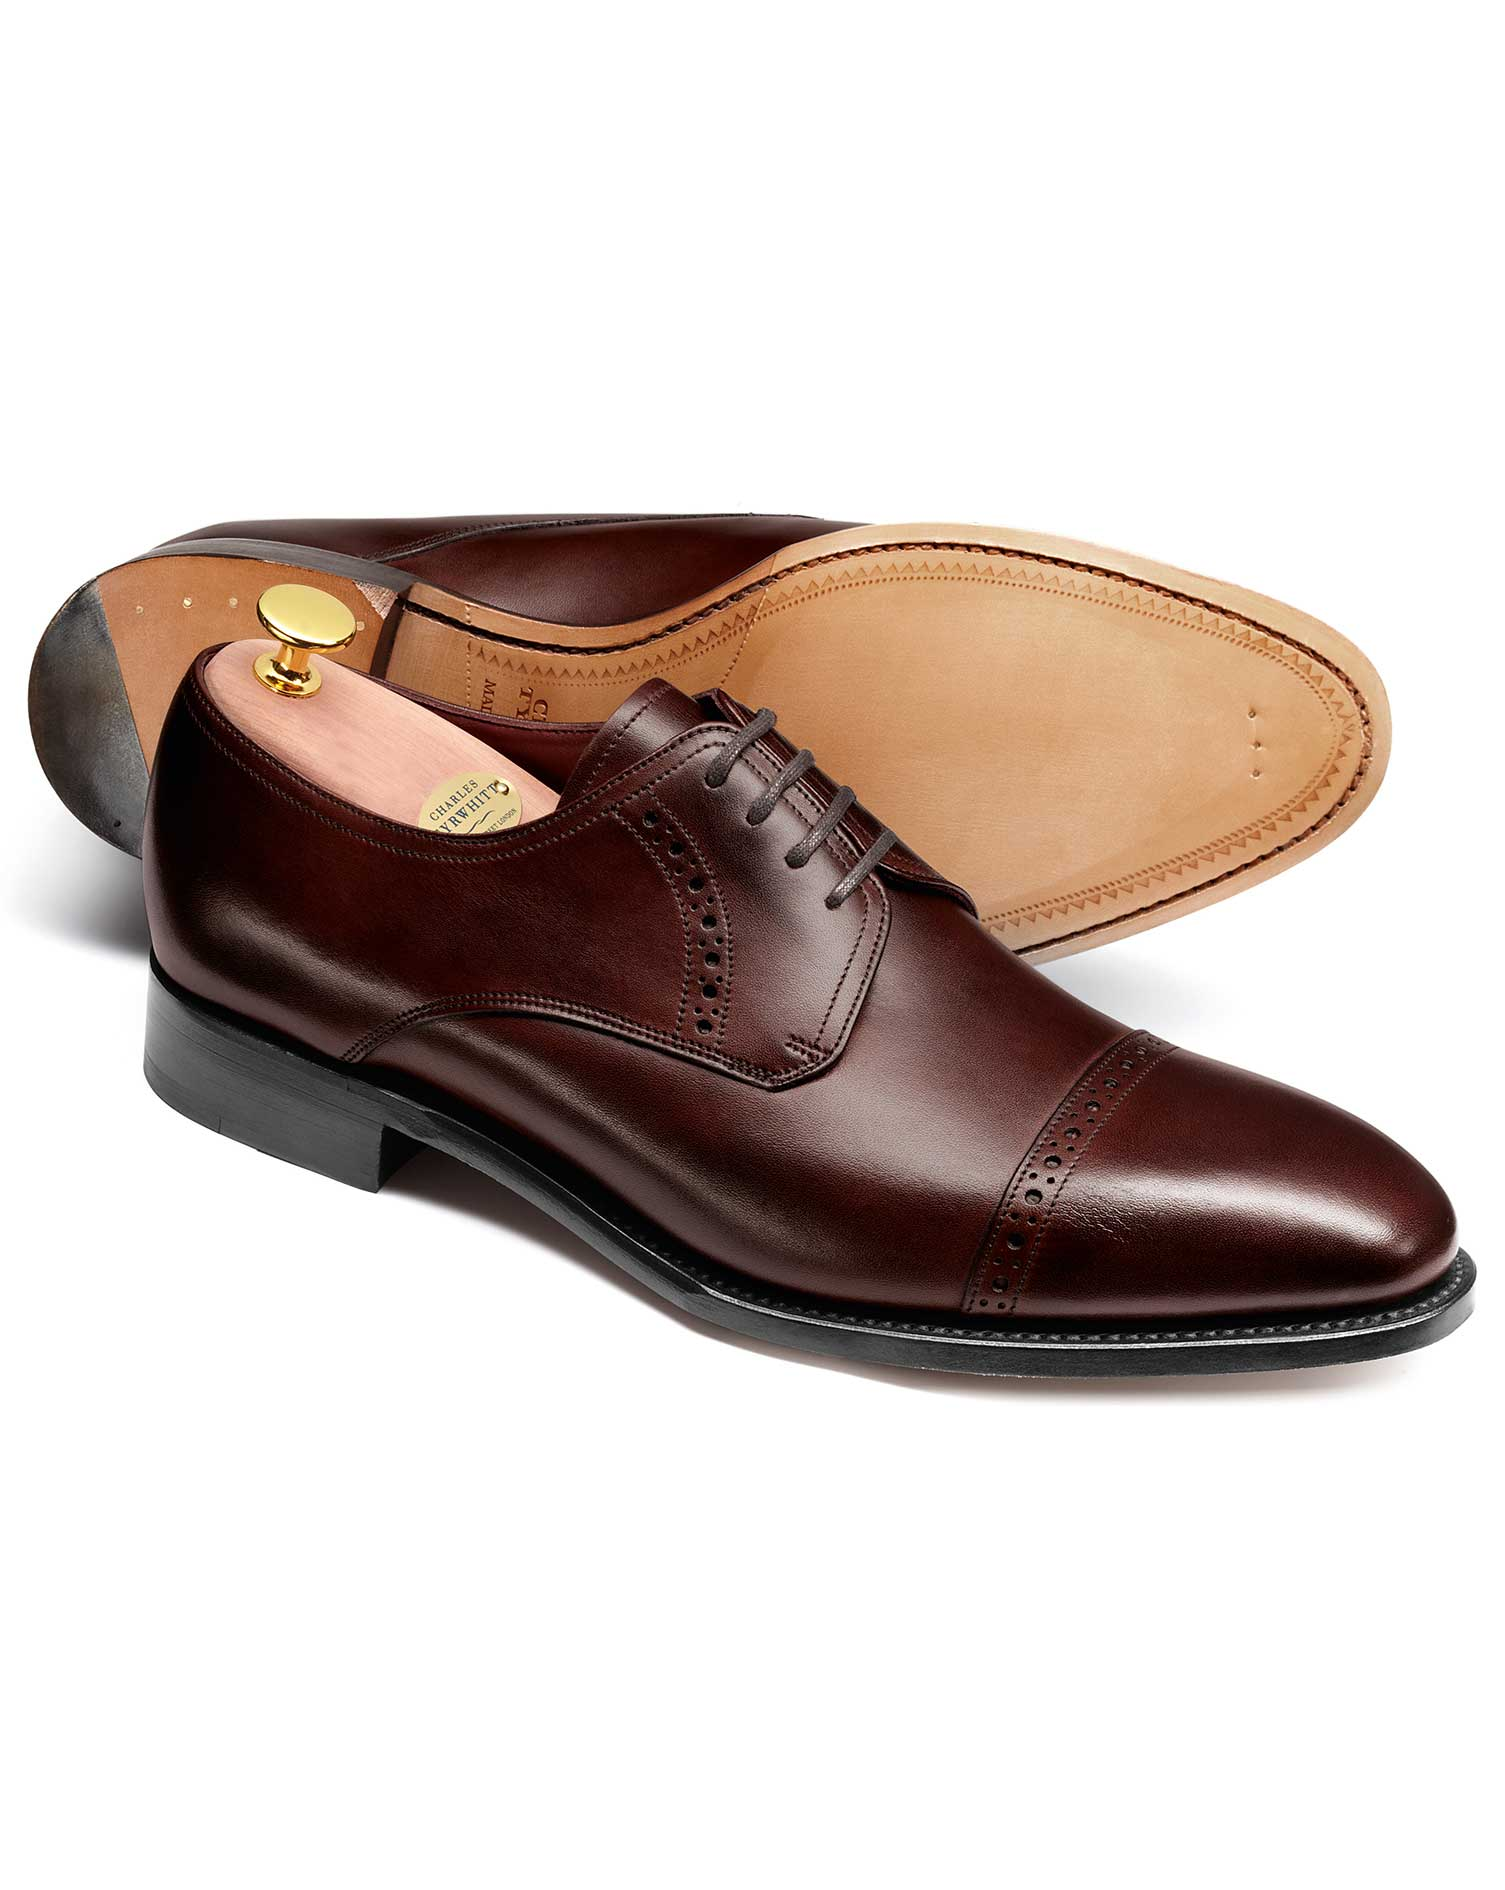 Brown Hallworthy Calf Leather Toe Cap Brogue Derby Shoes Size 13 R by Charles Tyrwhitt